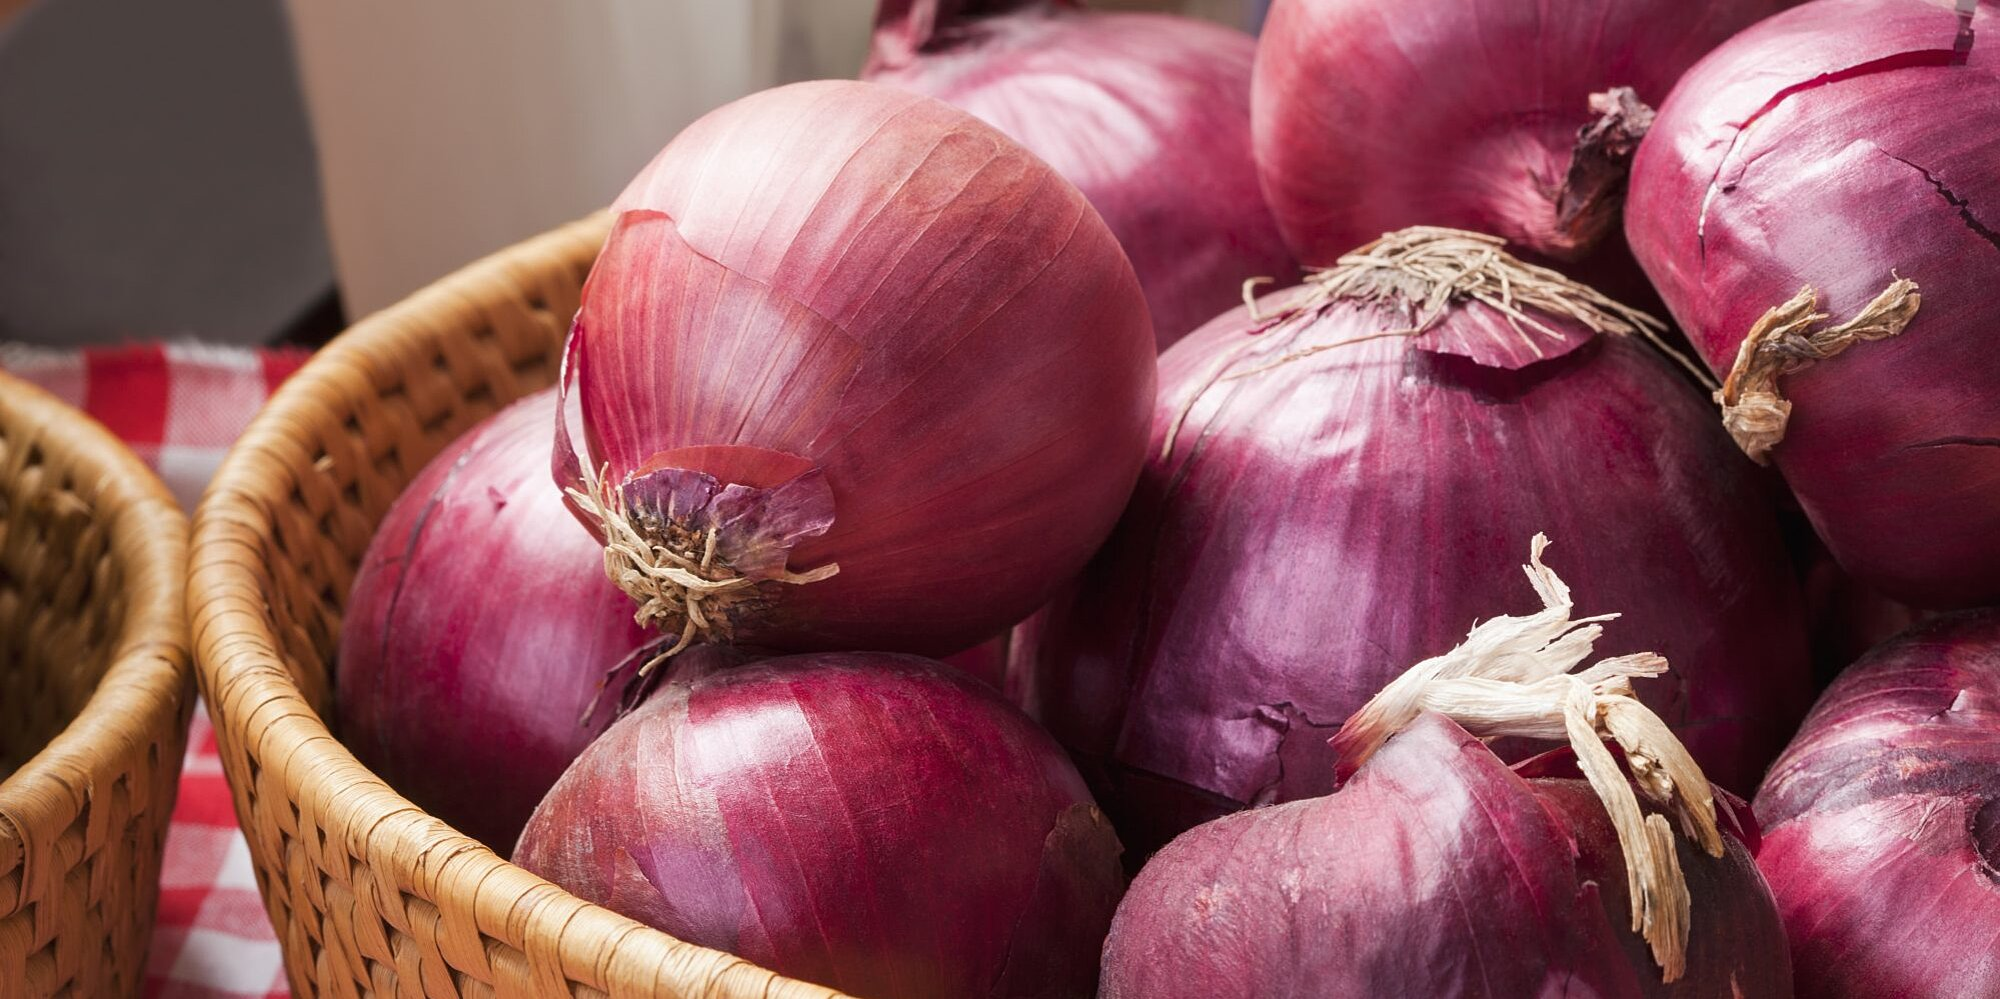 Storing Your Onions in This Room Could Have Some Unexpected Benefits